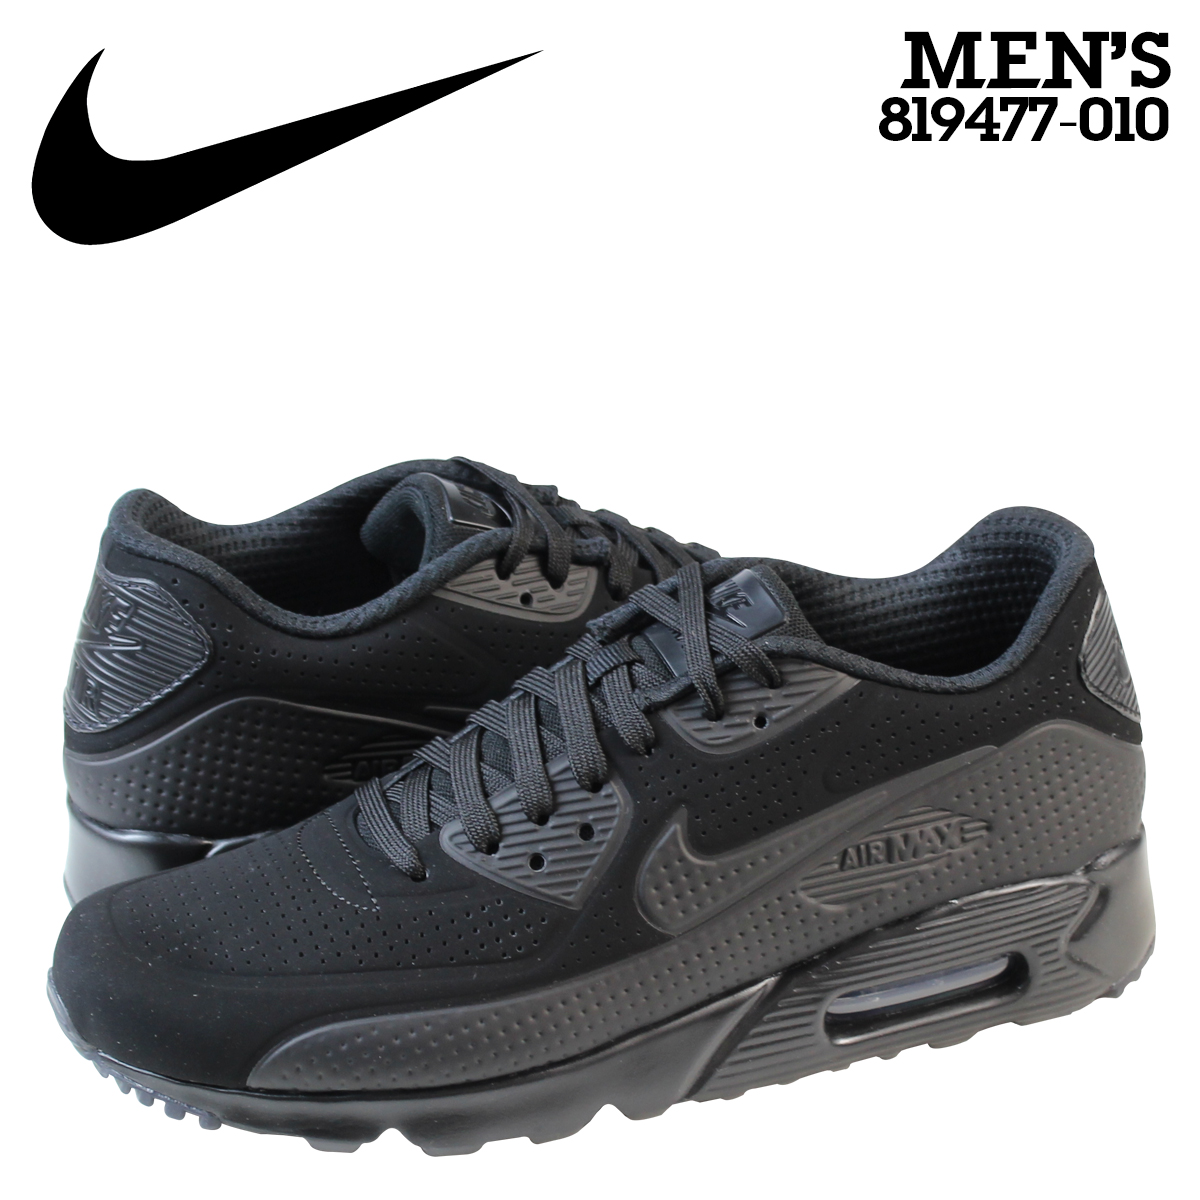 NIKE Kie Ney AMAX sneakers AIR MAX 90 ULTRA MOIRE Air Max 90 ultra moire 819,477 010 men's shoes black